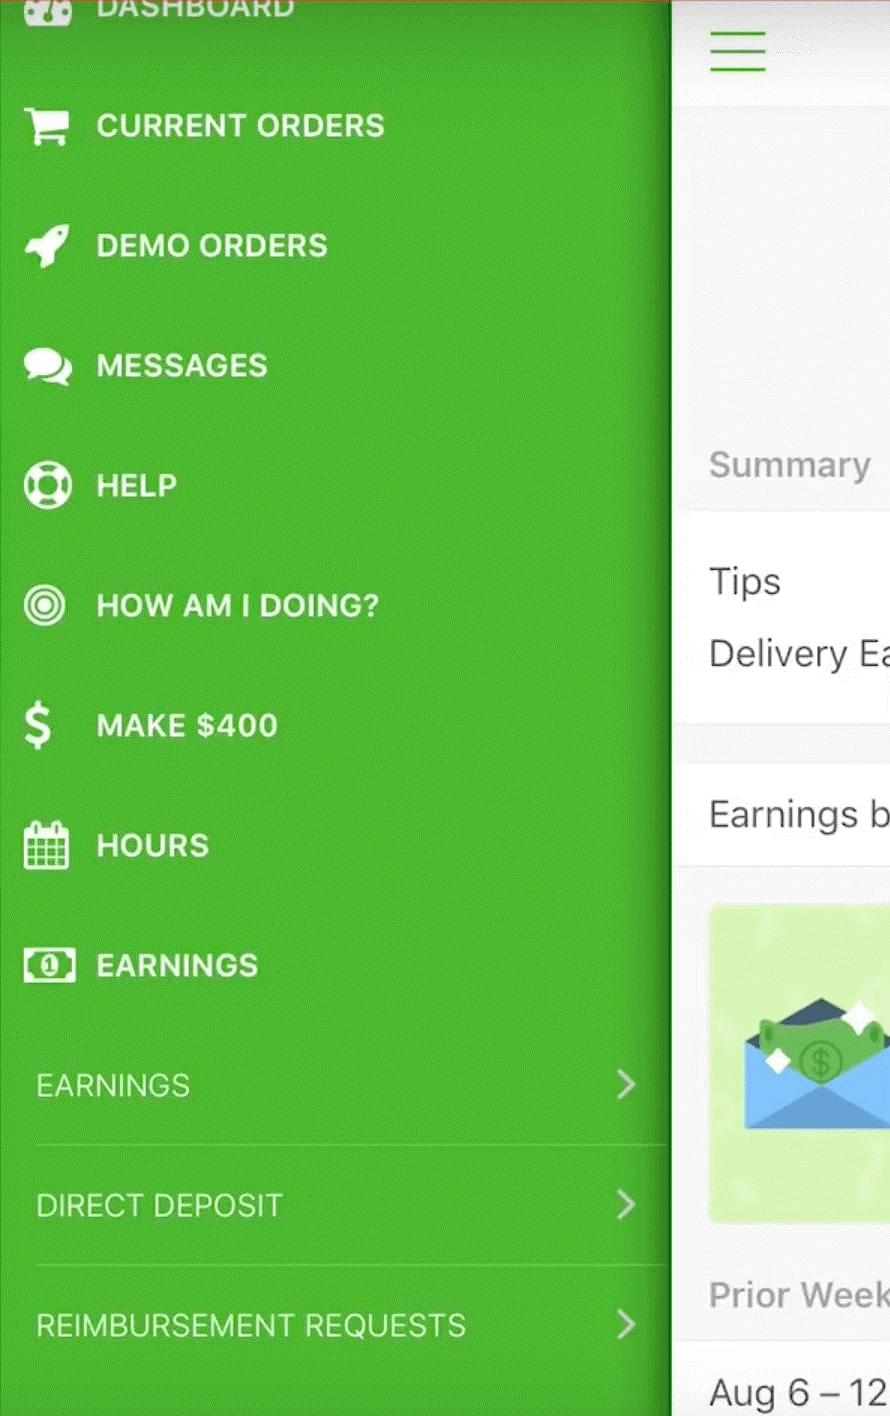 Instacart Promo Code For Drivers 2021 Earn 10 Every Hour Zouton